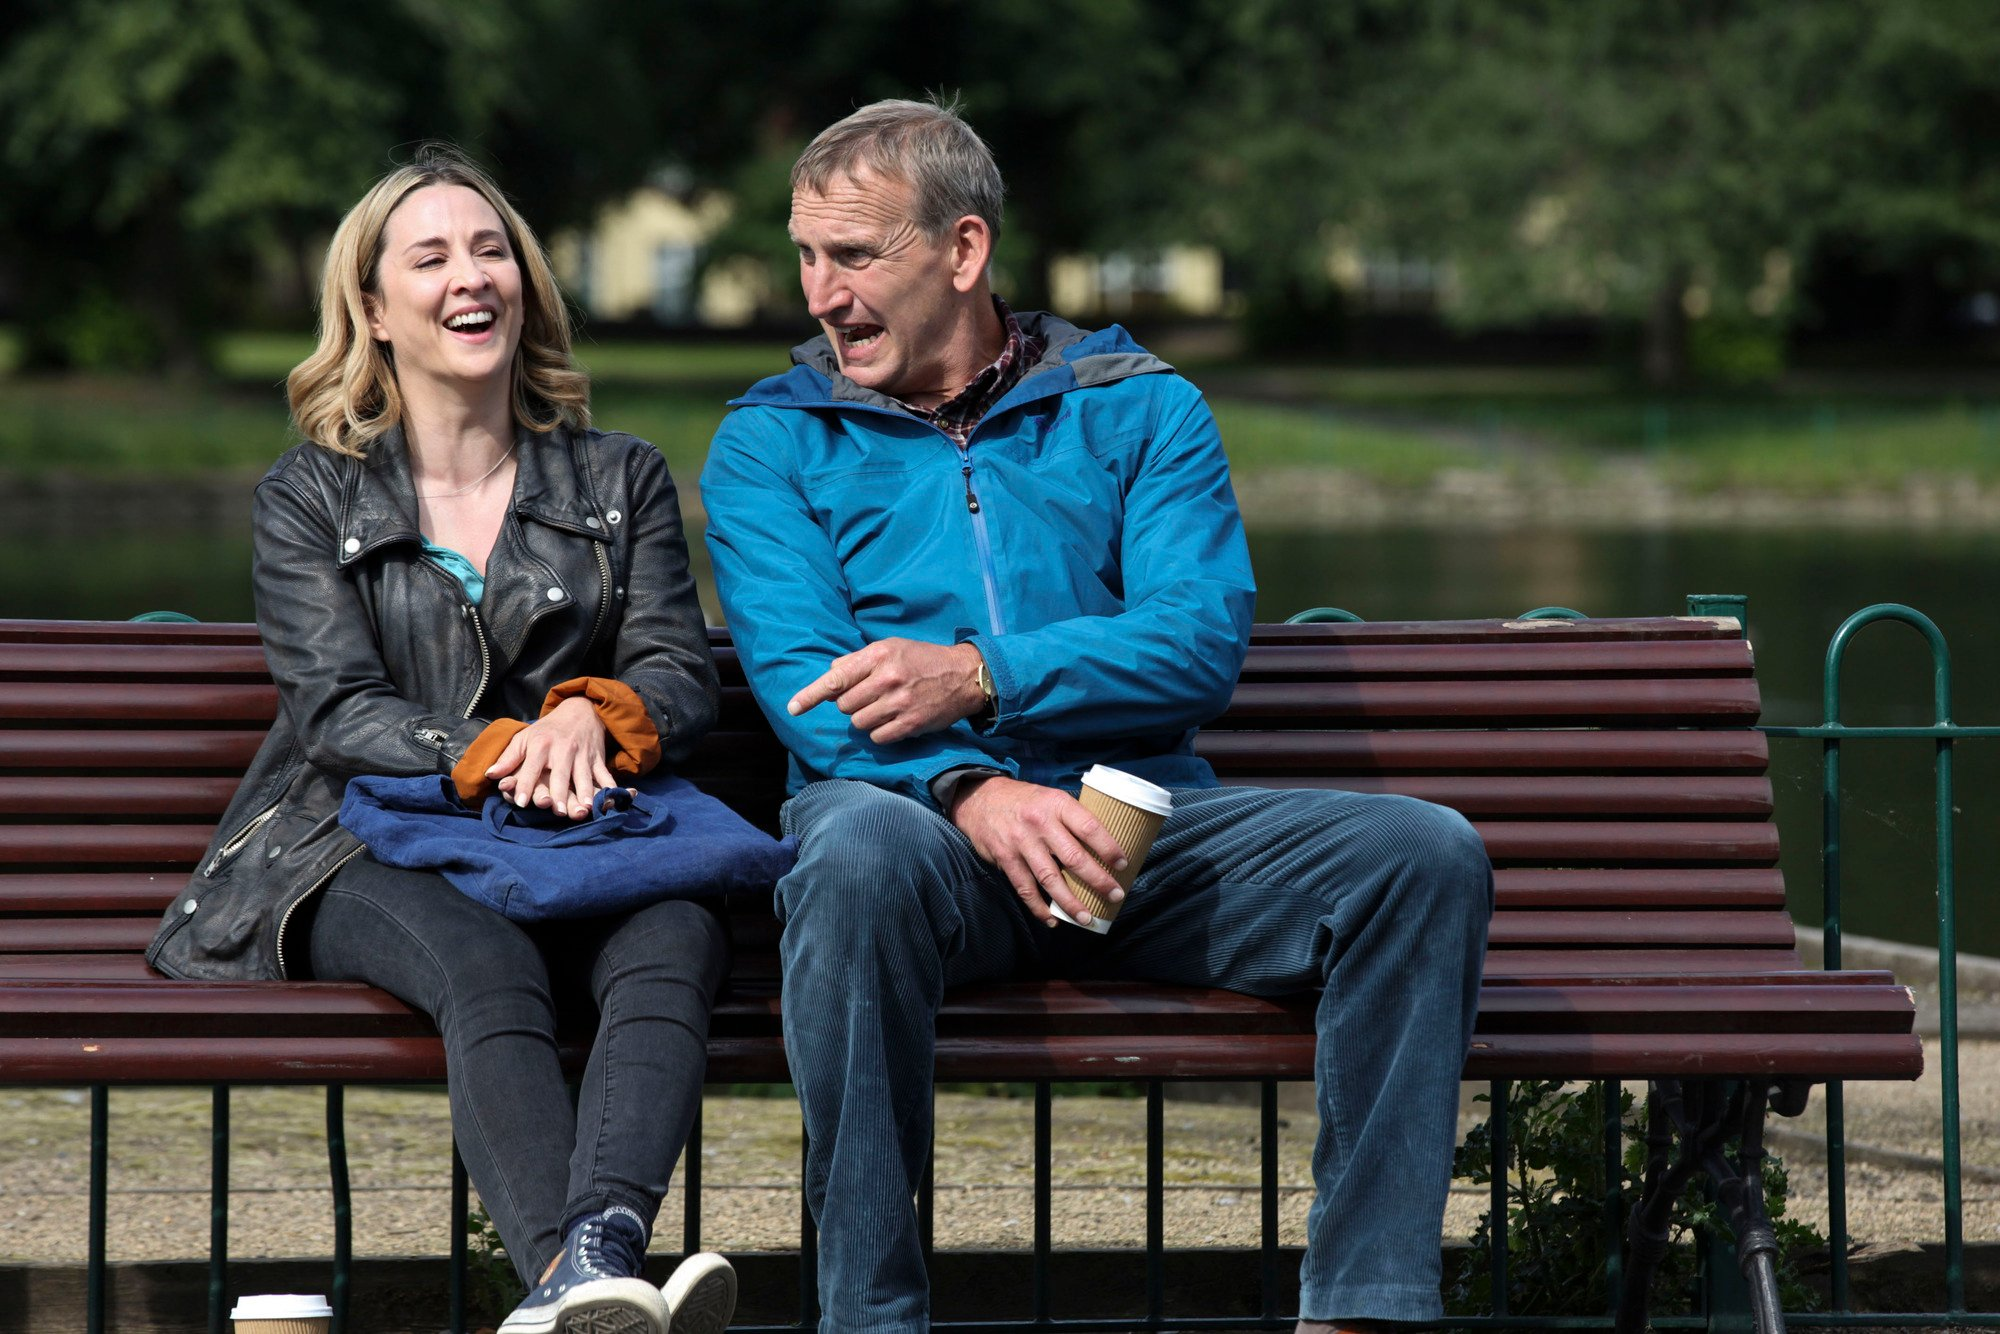 Morven Christie and Christopher Ecclestone in The A Word (Credit: BBC One)